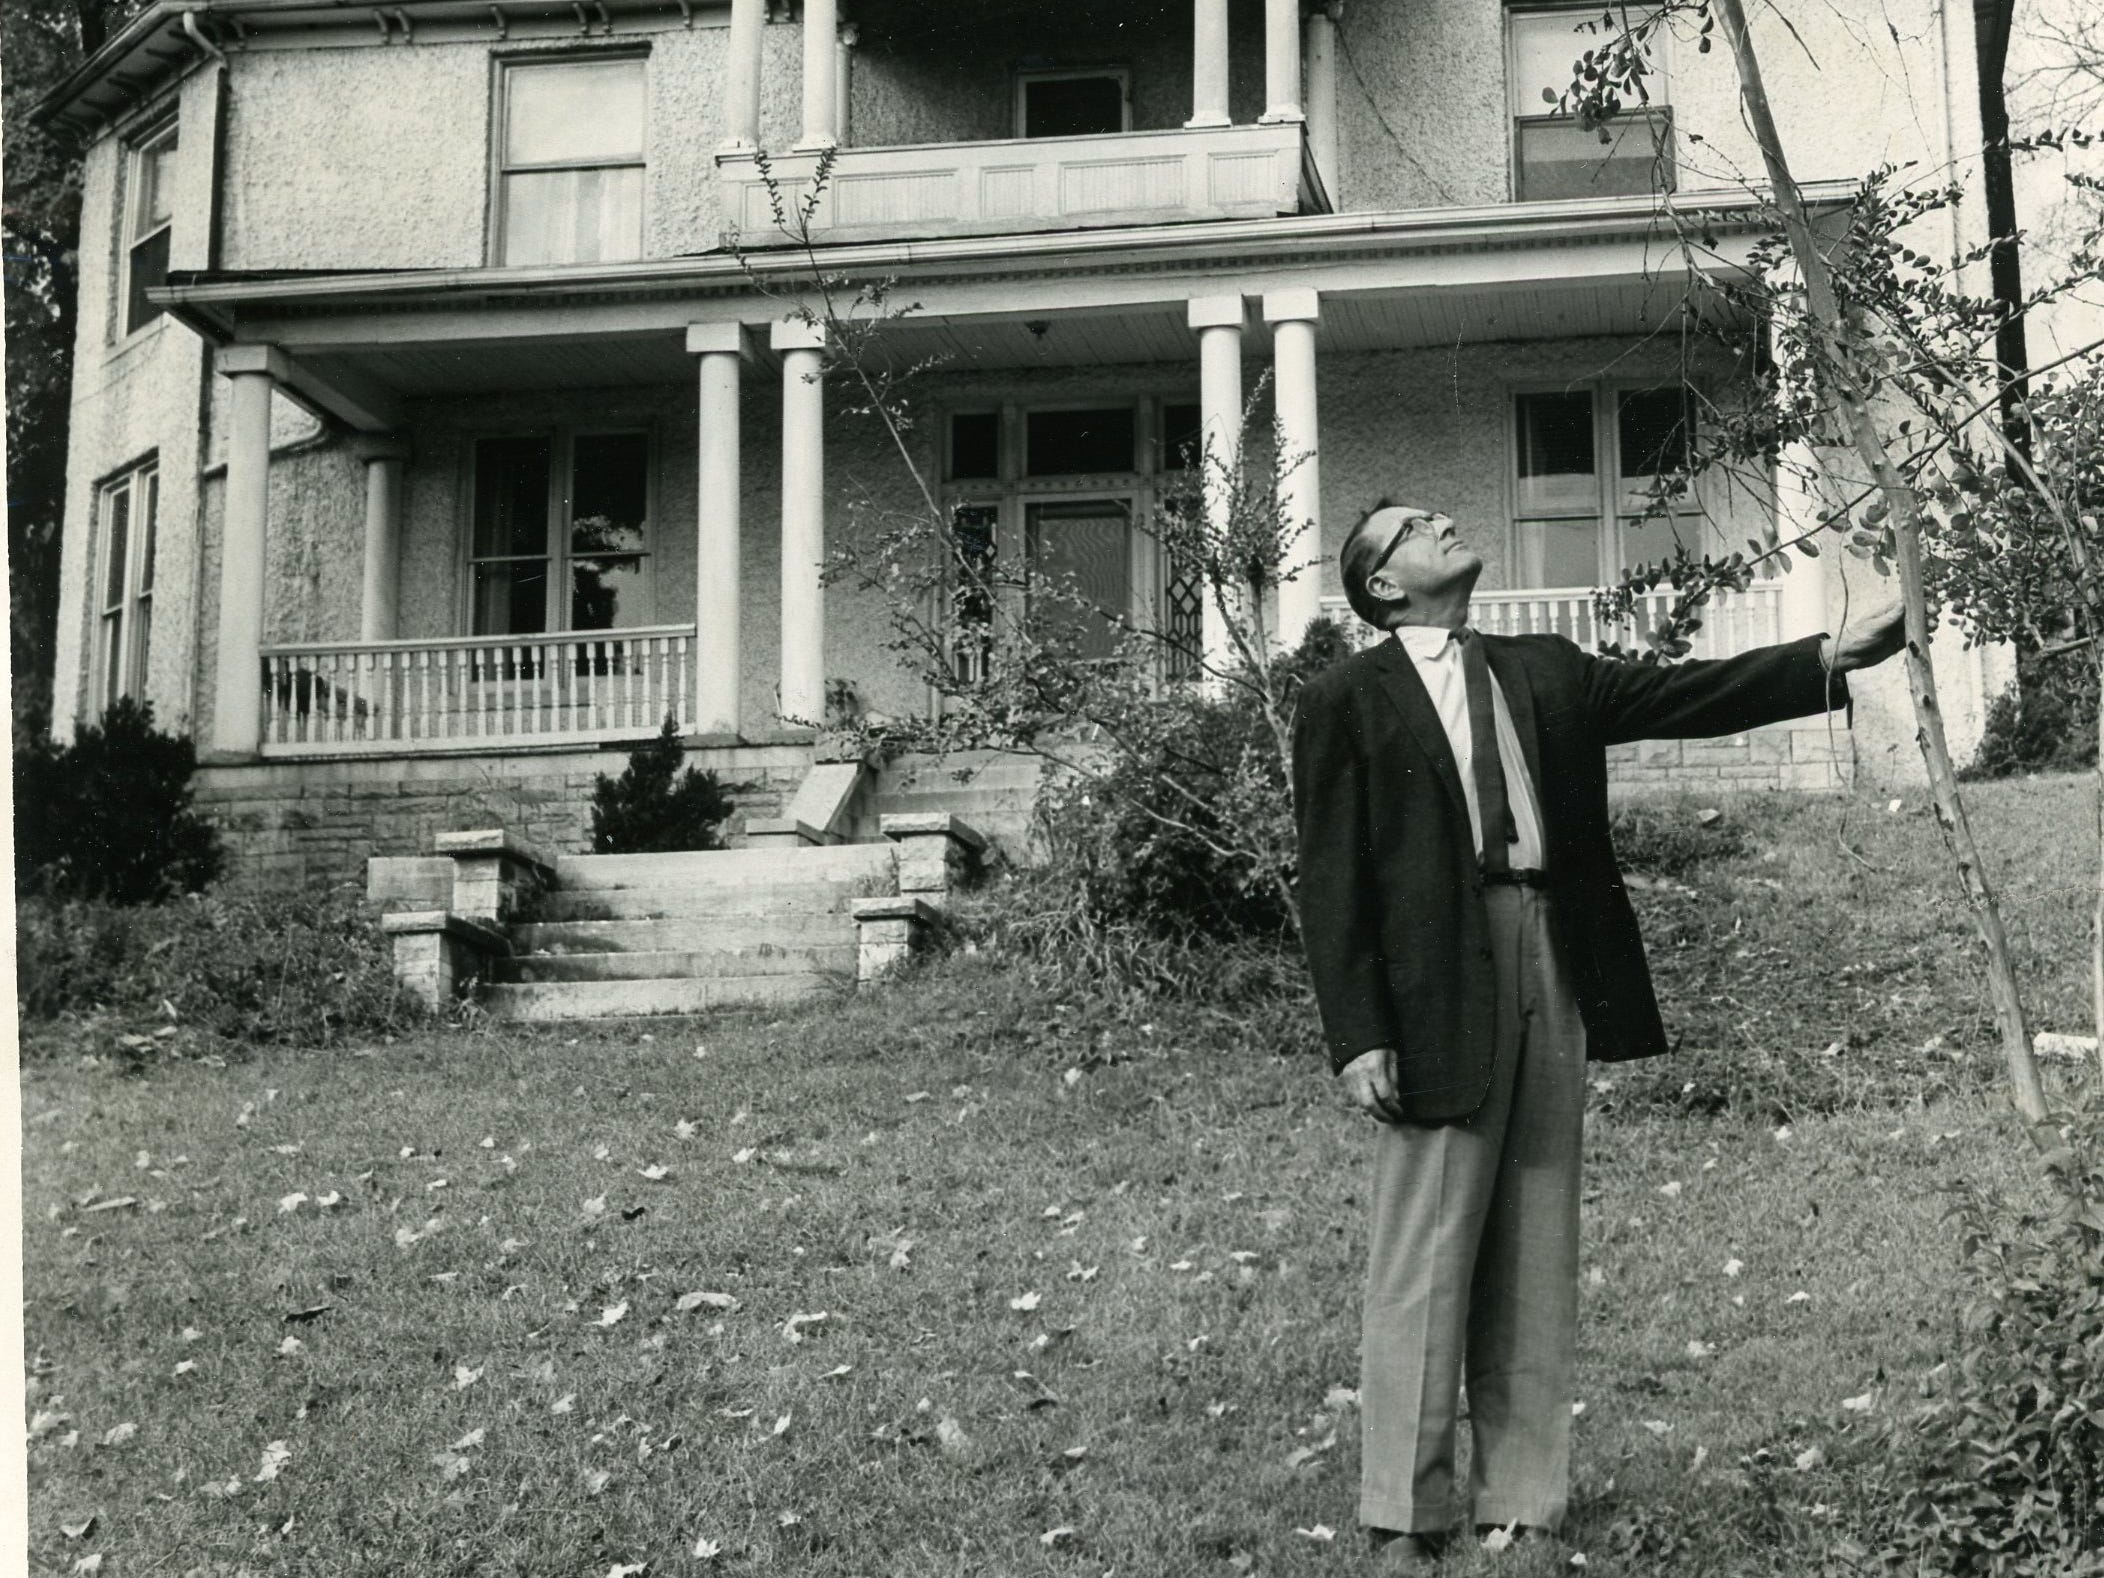 Myles Horton, director of the controversial Highlander Folk School at Monteagle is shown on the lawn of the house at 1625 Riverside Drive, November 1, 1961.